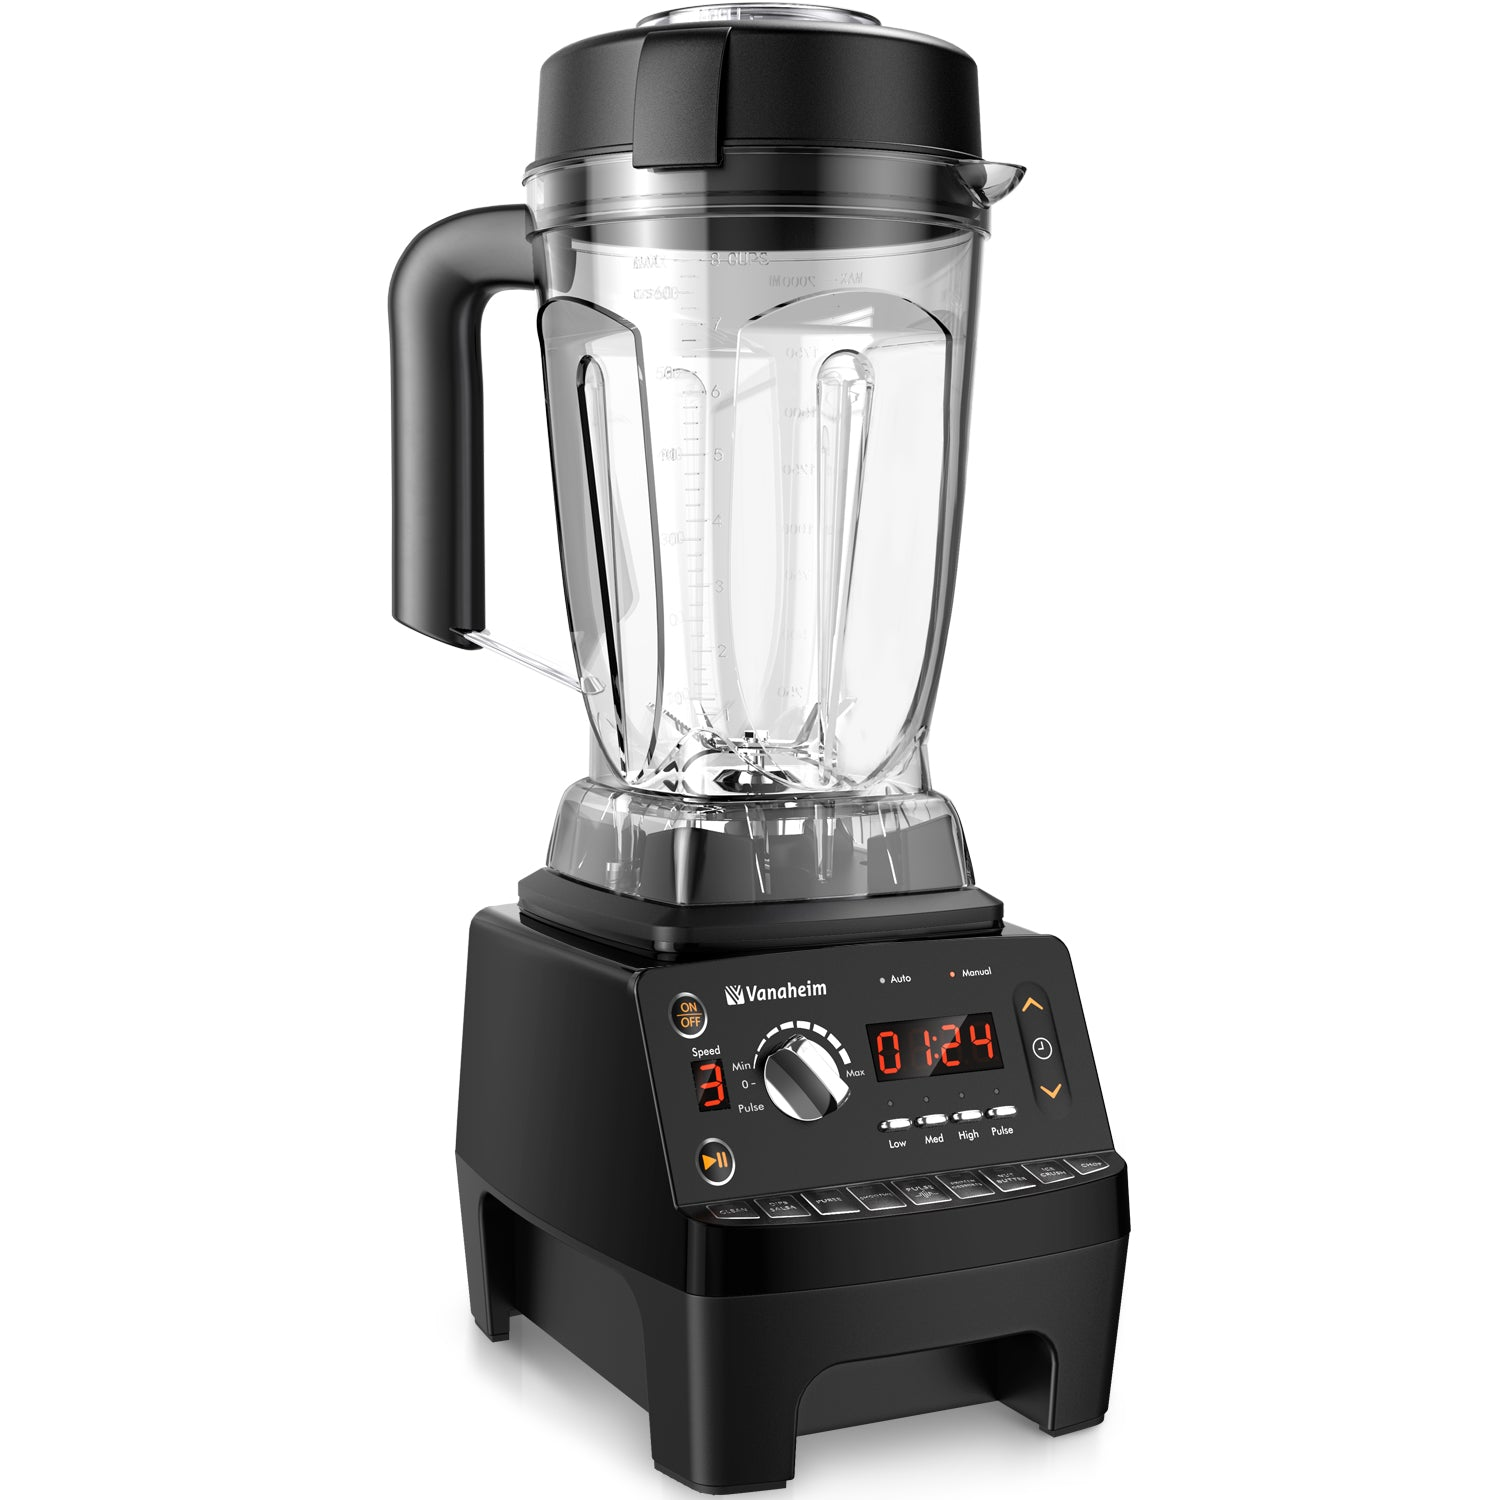 Vanaheim Professional Blender 1450W, 64Oz Container with Tamper,9 Auto Programs,Variable Speed,Auto Clean,Powerful Stainless Steel Blade for Easily Crushing of Ice Smoothies and Frozen Desert, 2.25HP